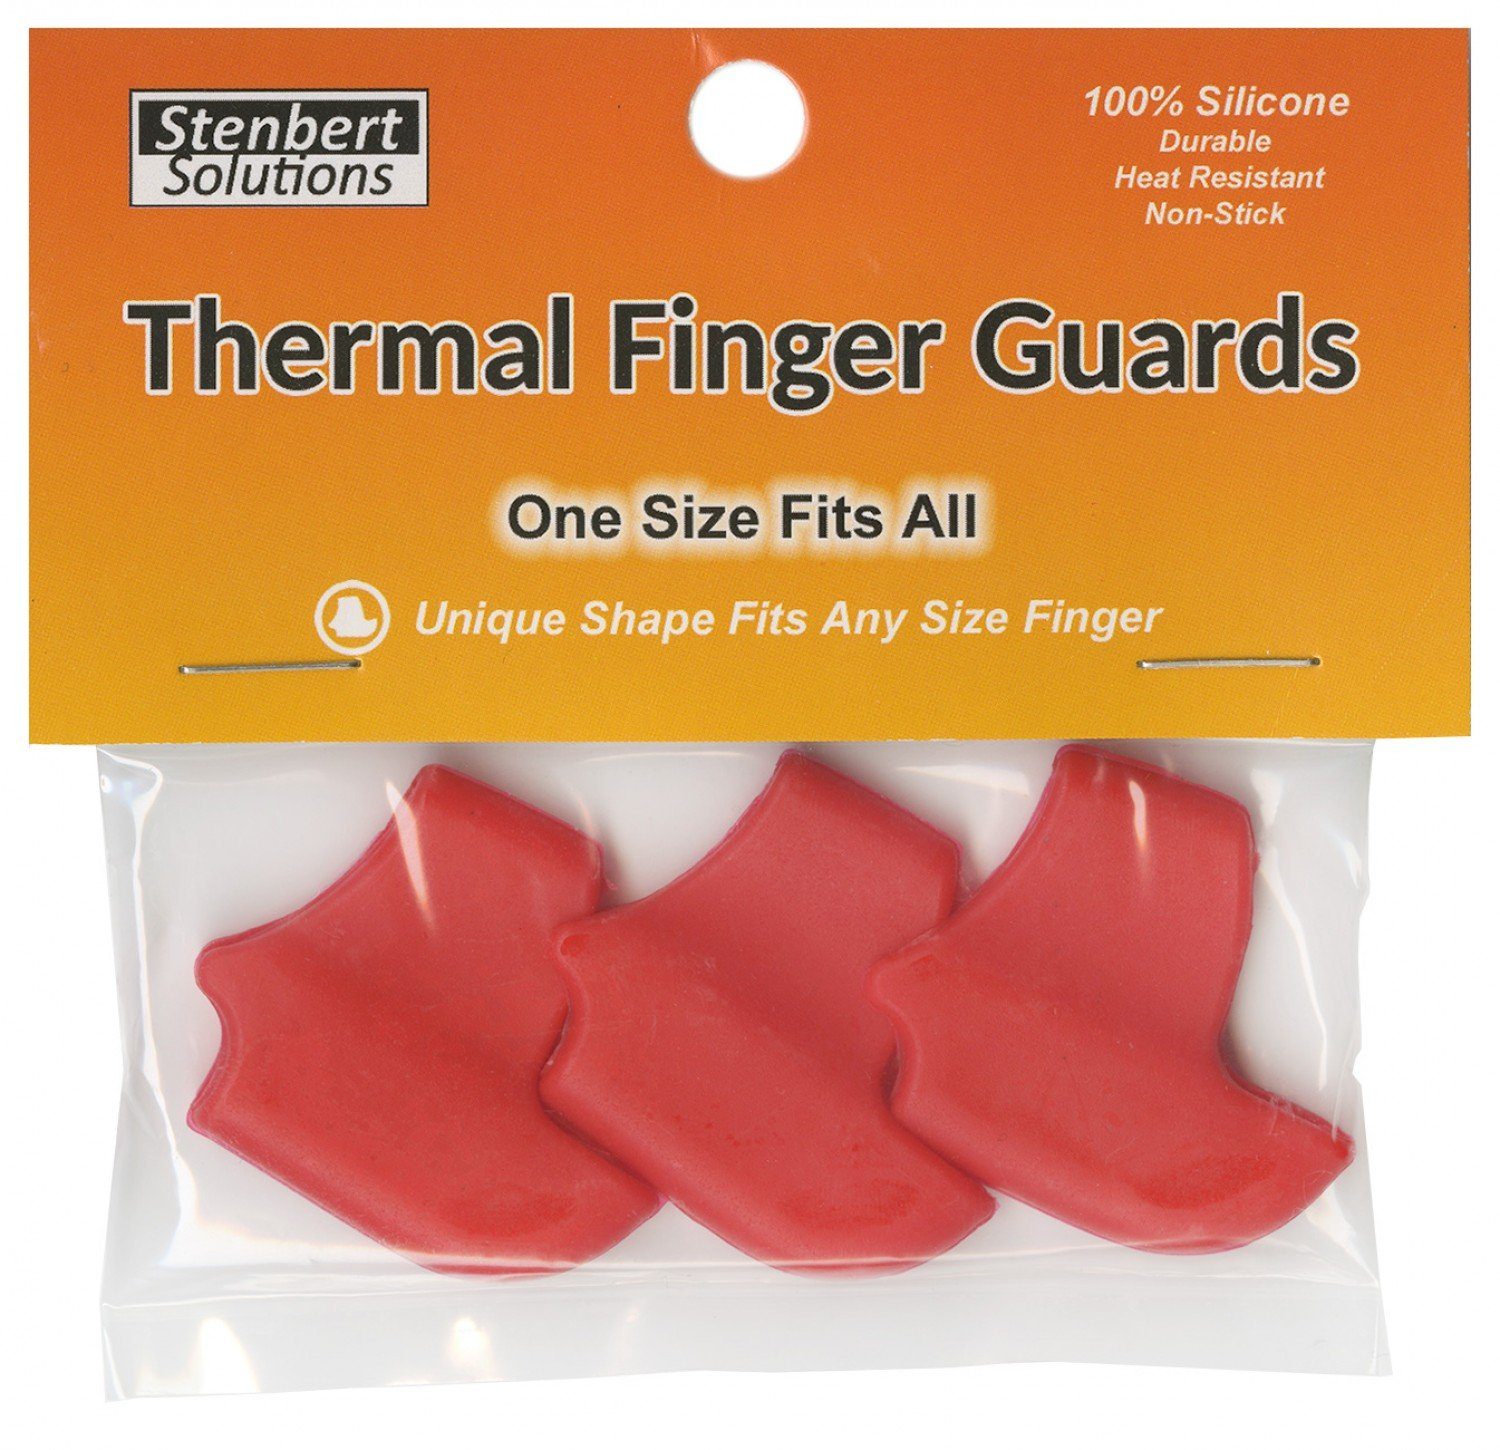 3 Thermal Finger Guards